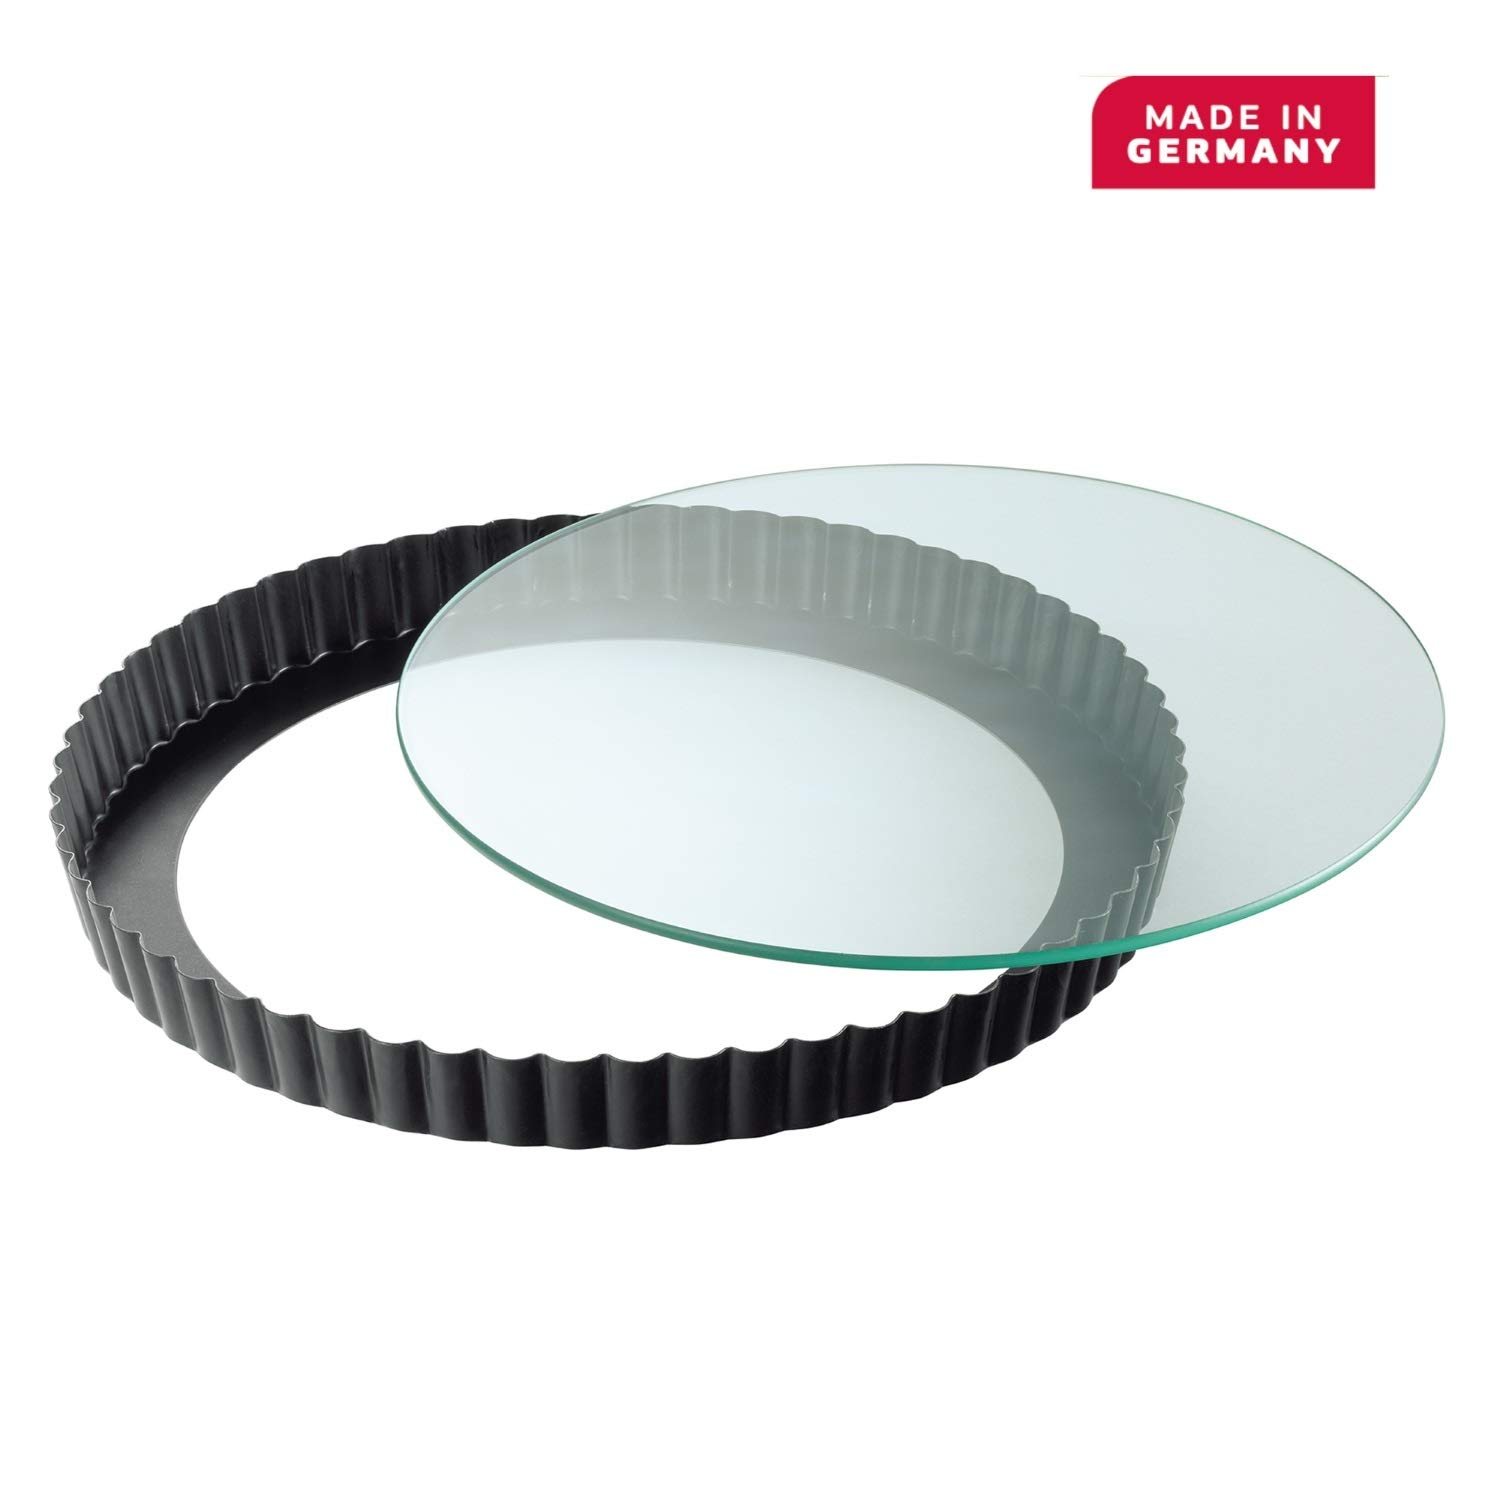 Kaiser Bakeware Quiche and Tart Pan with Glass Floor Elevator 11 Inches by Kaiser